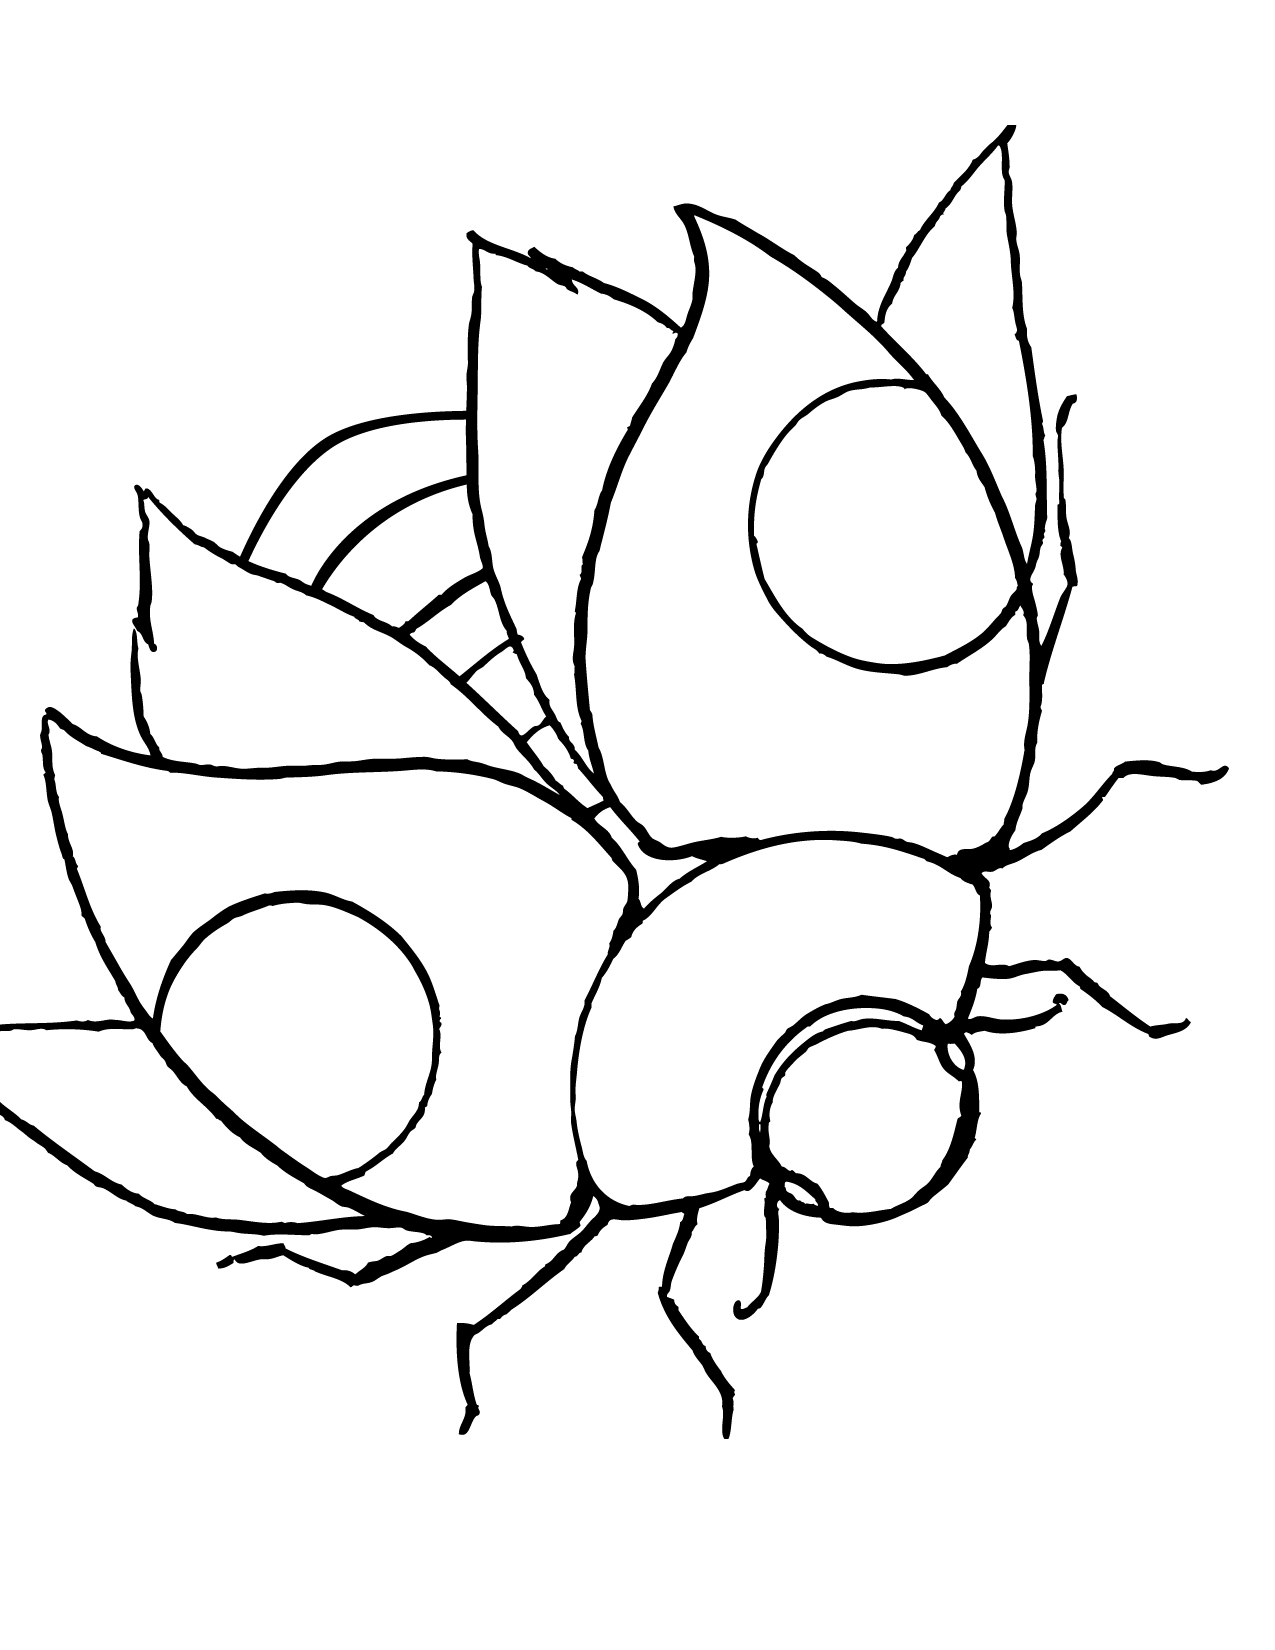 Coloring pages insects